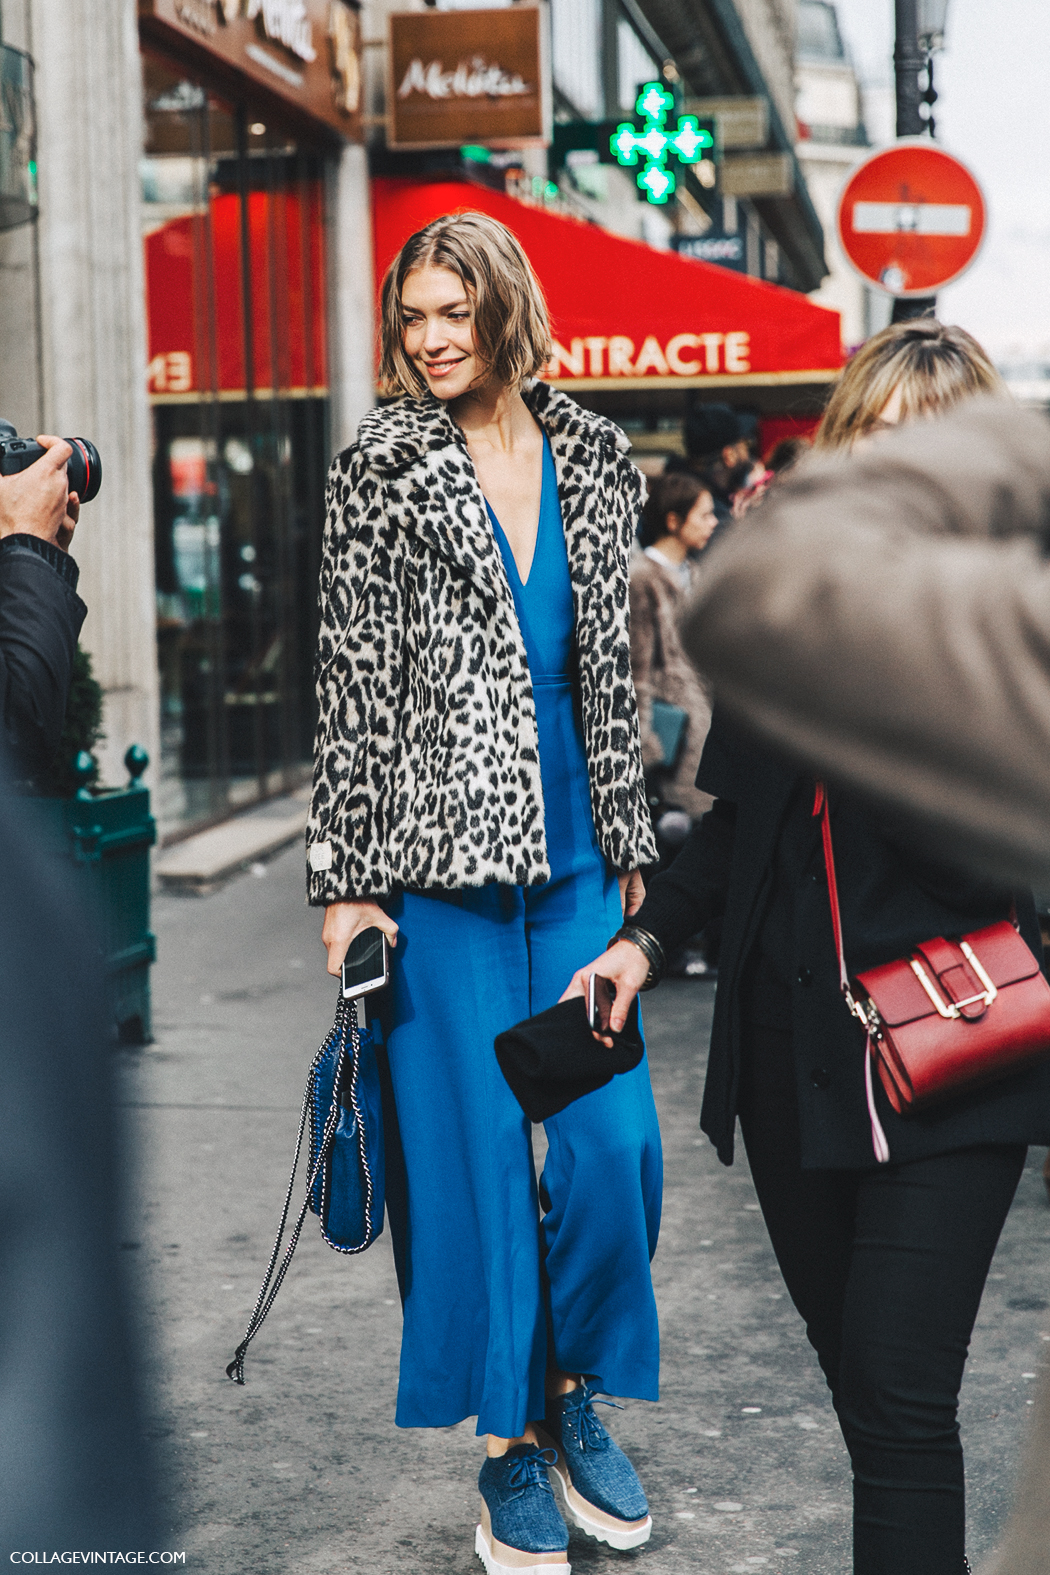 PFW-Paris_Fashion_Week_Fall_2016-Street_Style-Collage_Vintage-Stella_McCartney-Jumpsuit-Leopard_Fur_Coat-MOdel-1